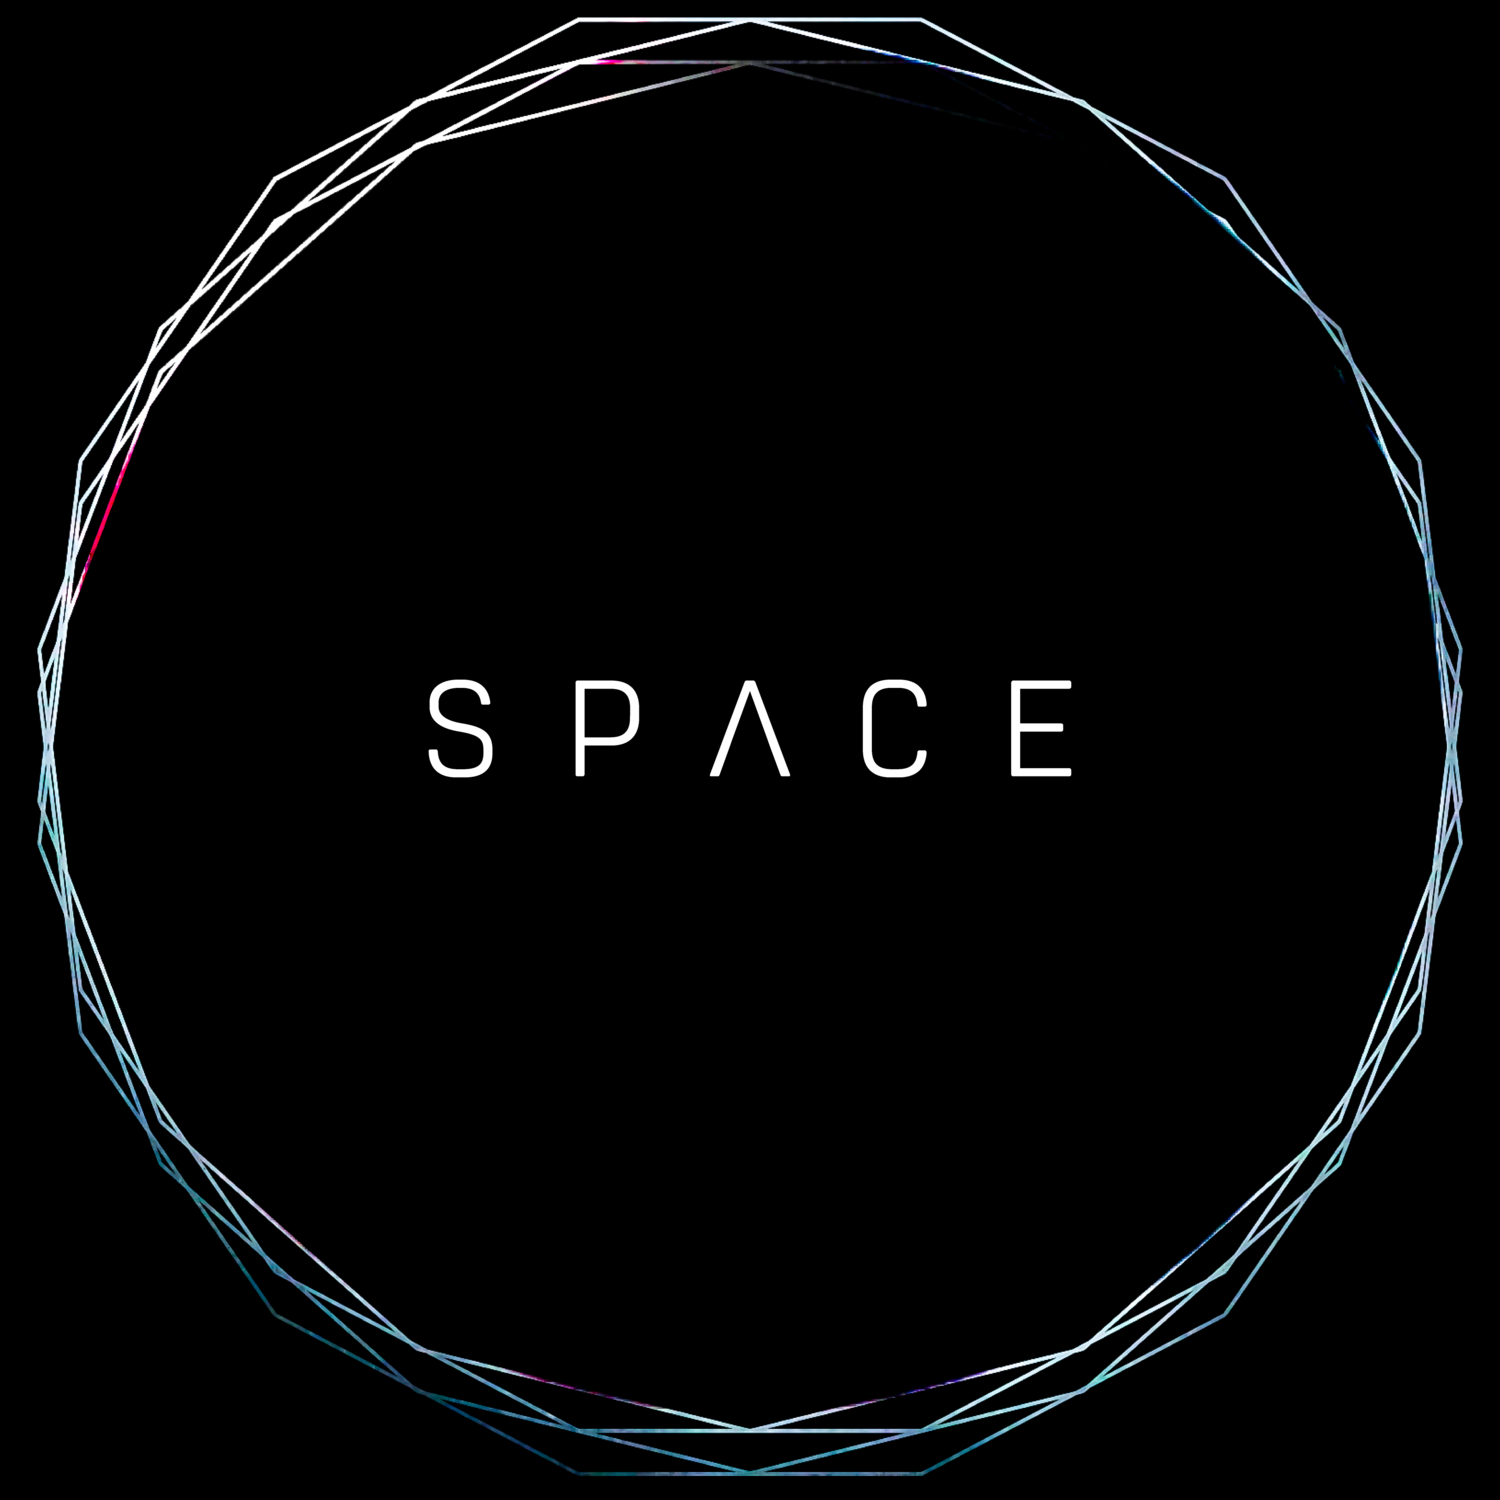 S P A C E  /  Debut single 'Home' out now!